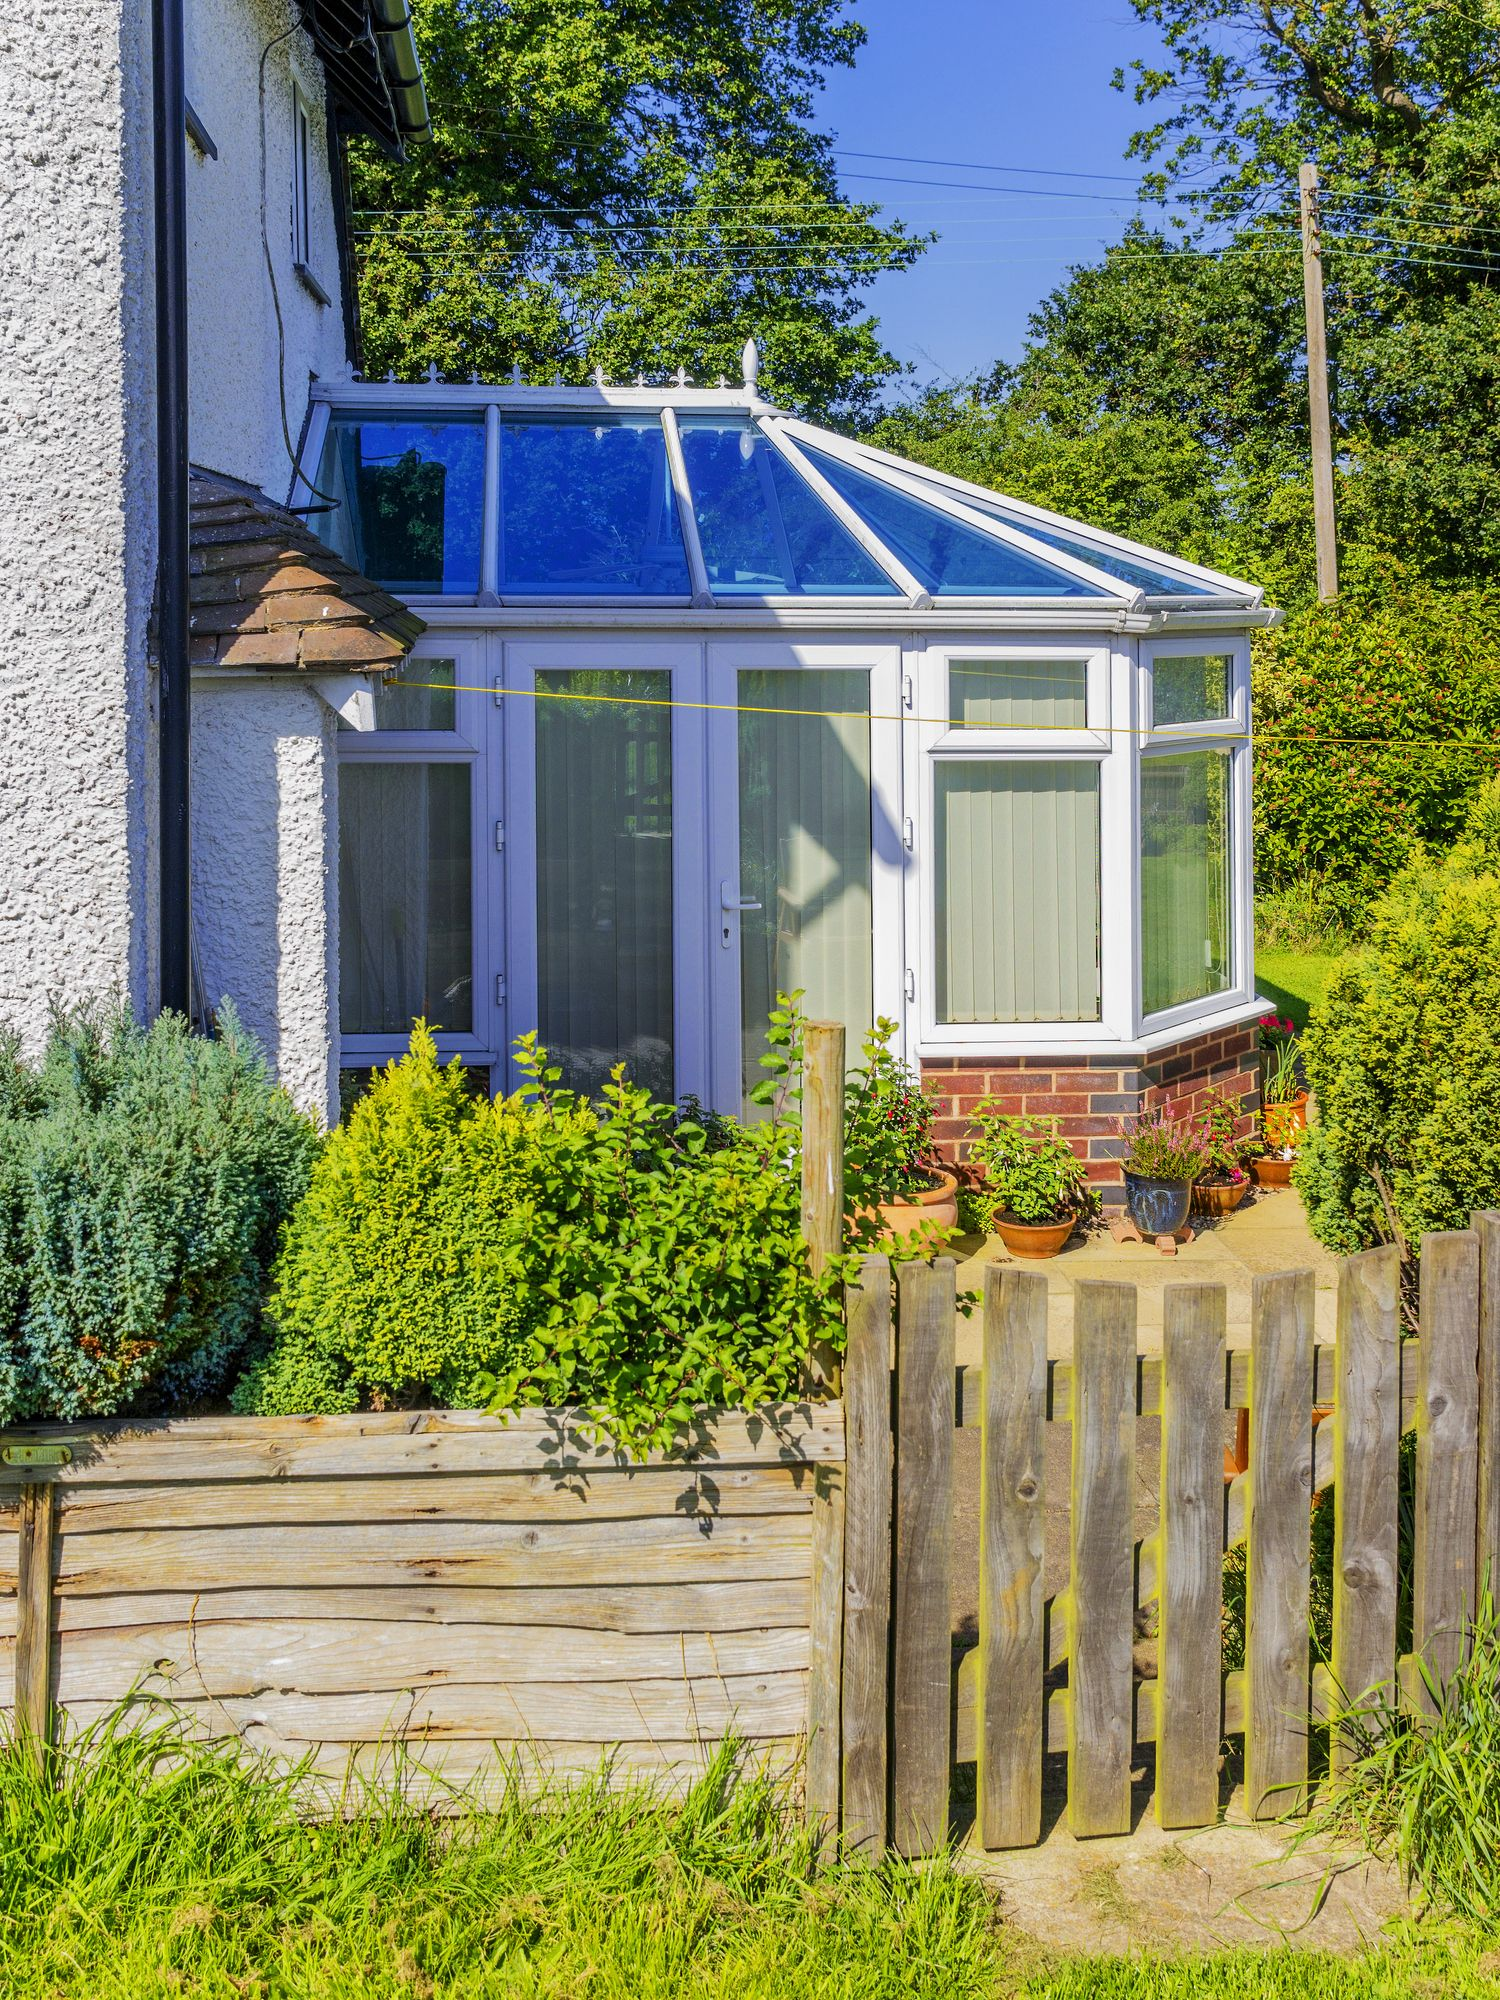 Do you need planning permission? 5 home renovation projects you can do